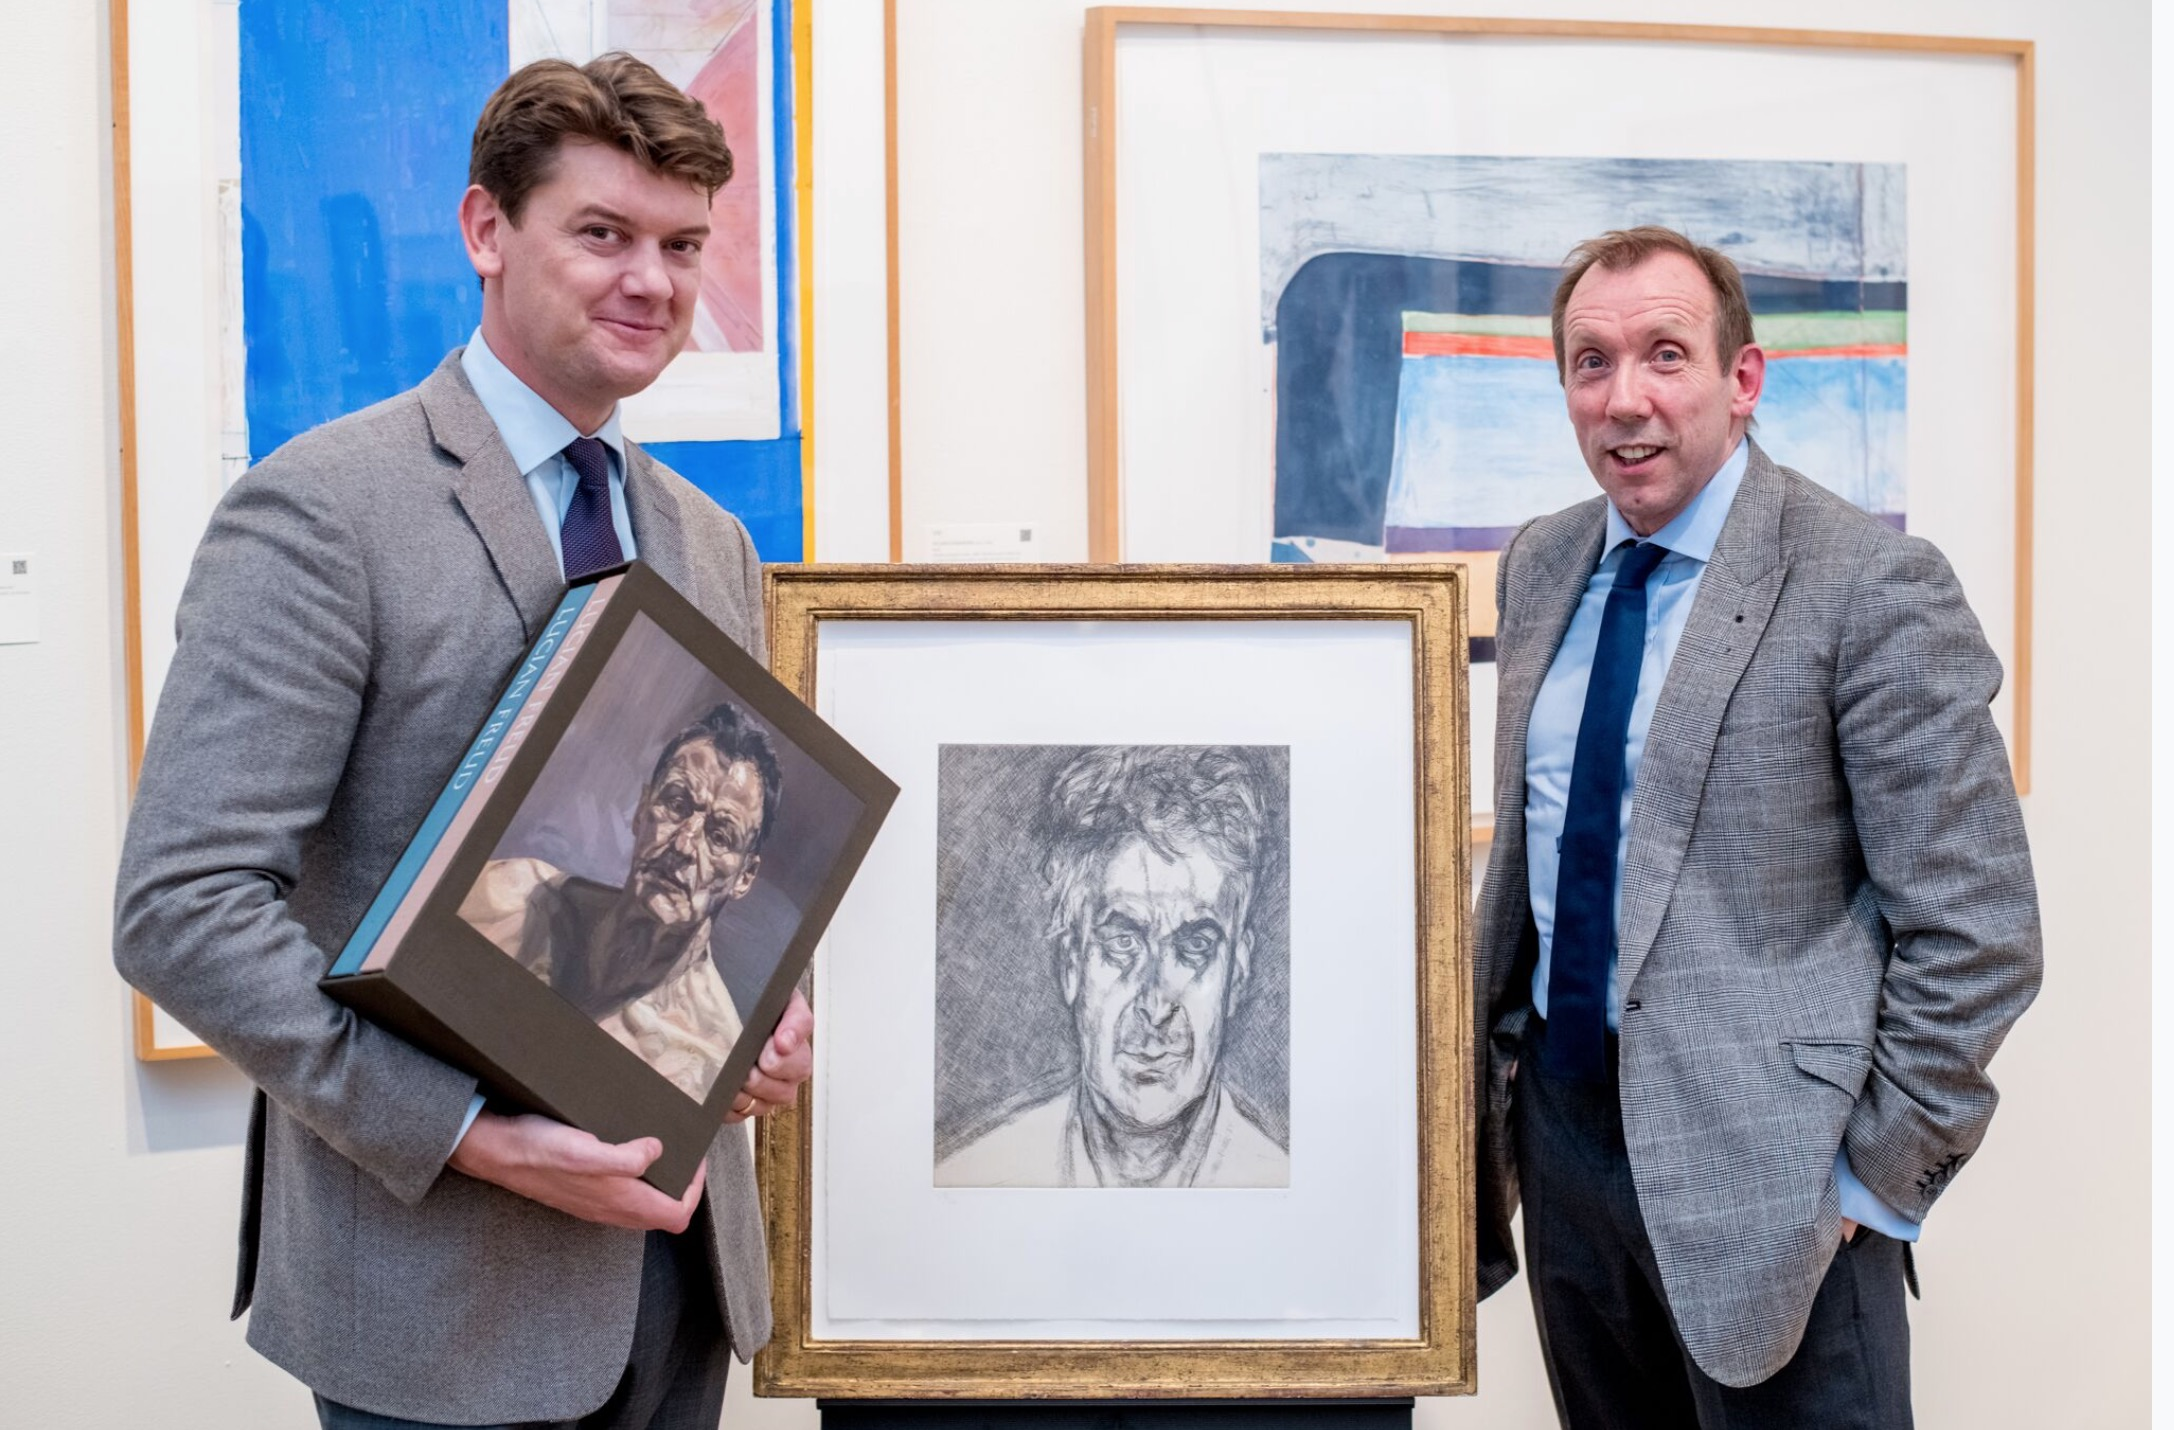 'Exhausting, Exhilarating, Exasperating but Inspiring' - David Dawson at Sotheby's on sitting for Lucian Freud